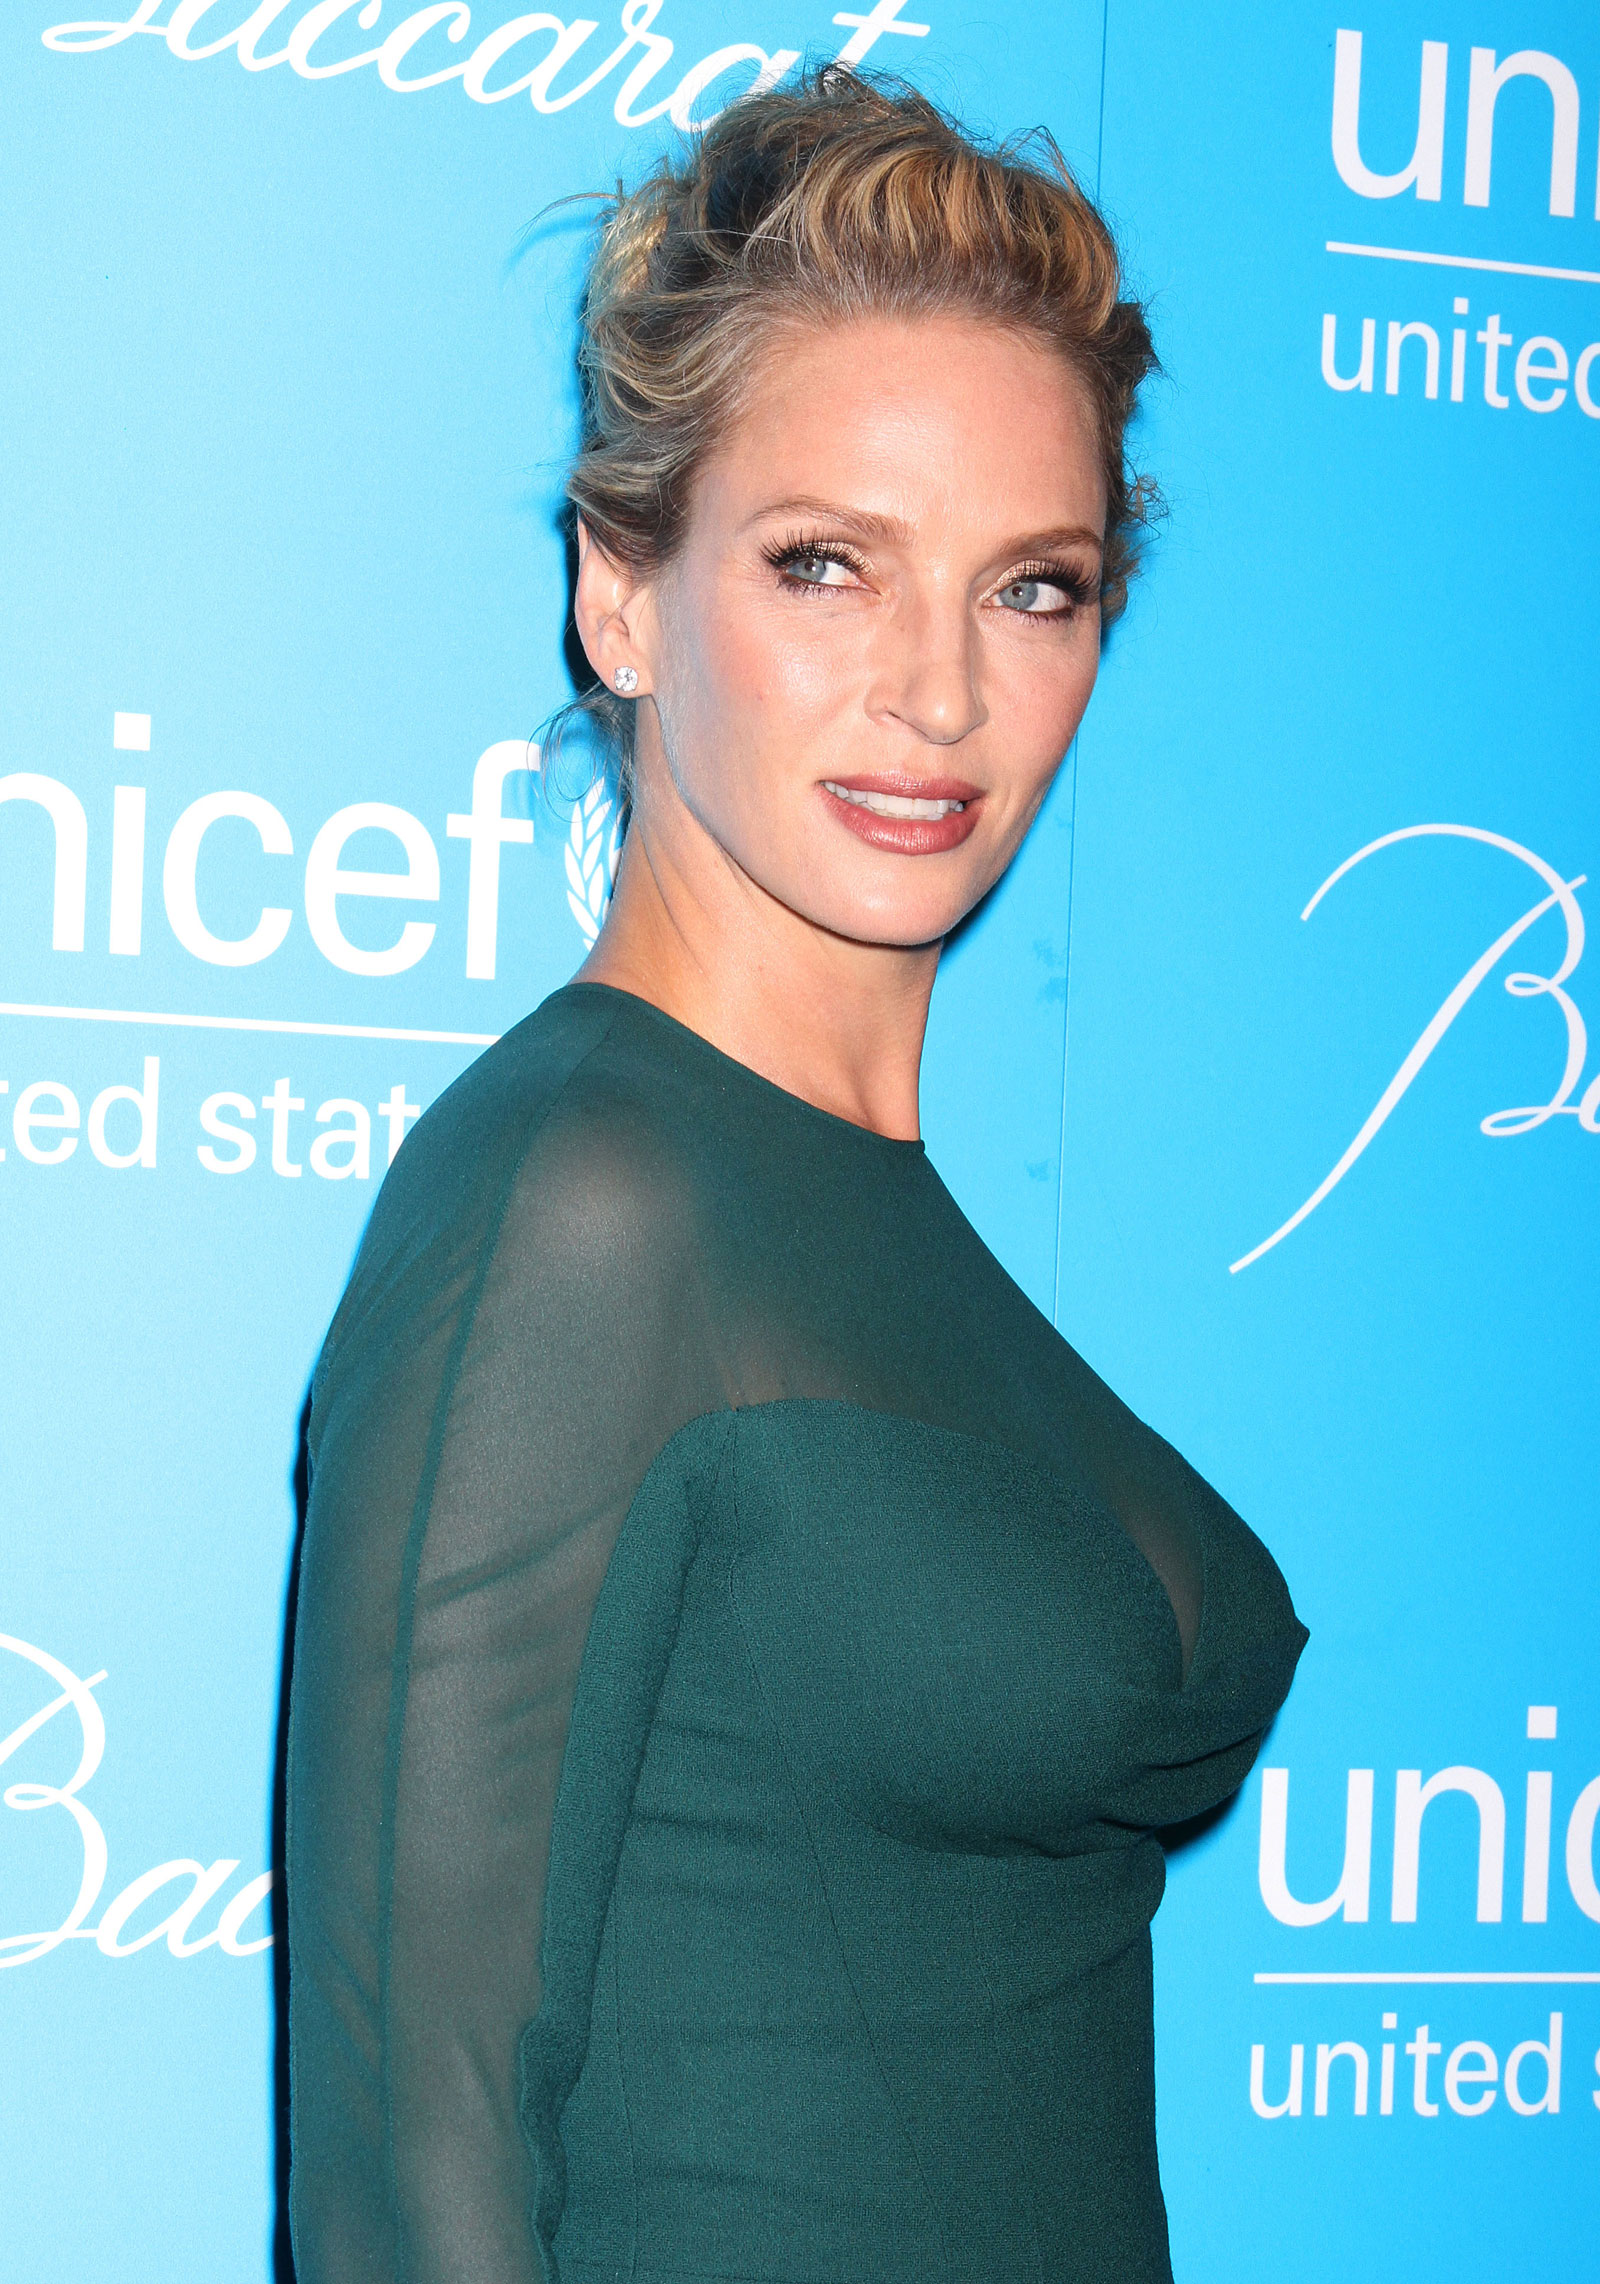 Uma thurman at unicef snowflake ball in new york